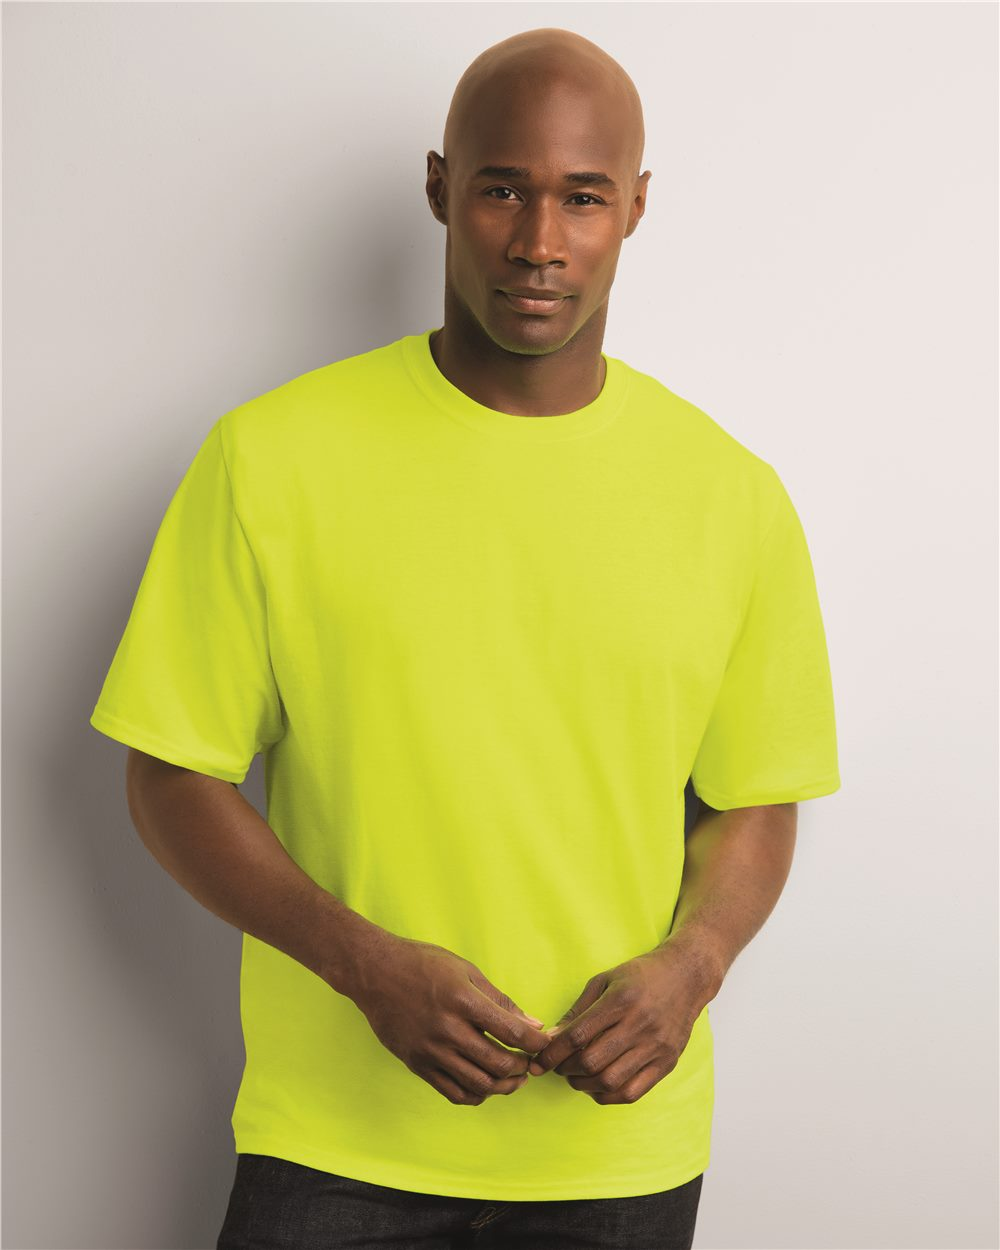 Gildan 2000T Ultra Cotton T-Shirt Tall Sizes